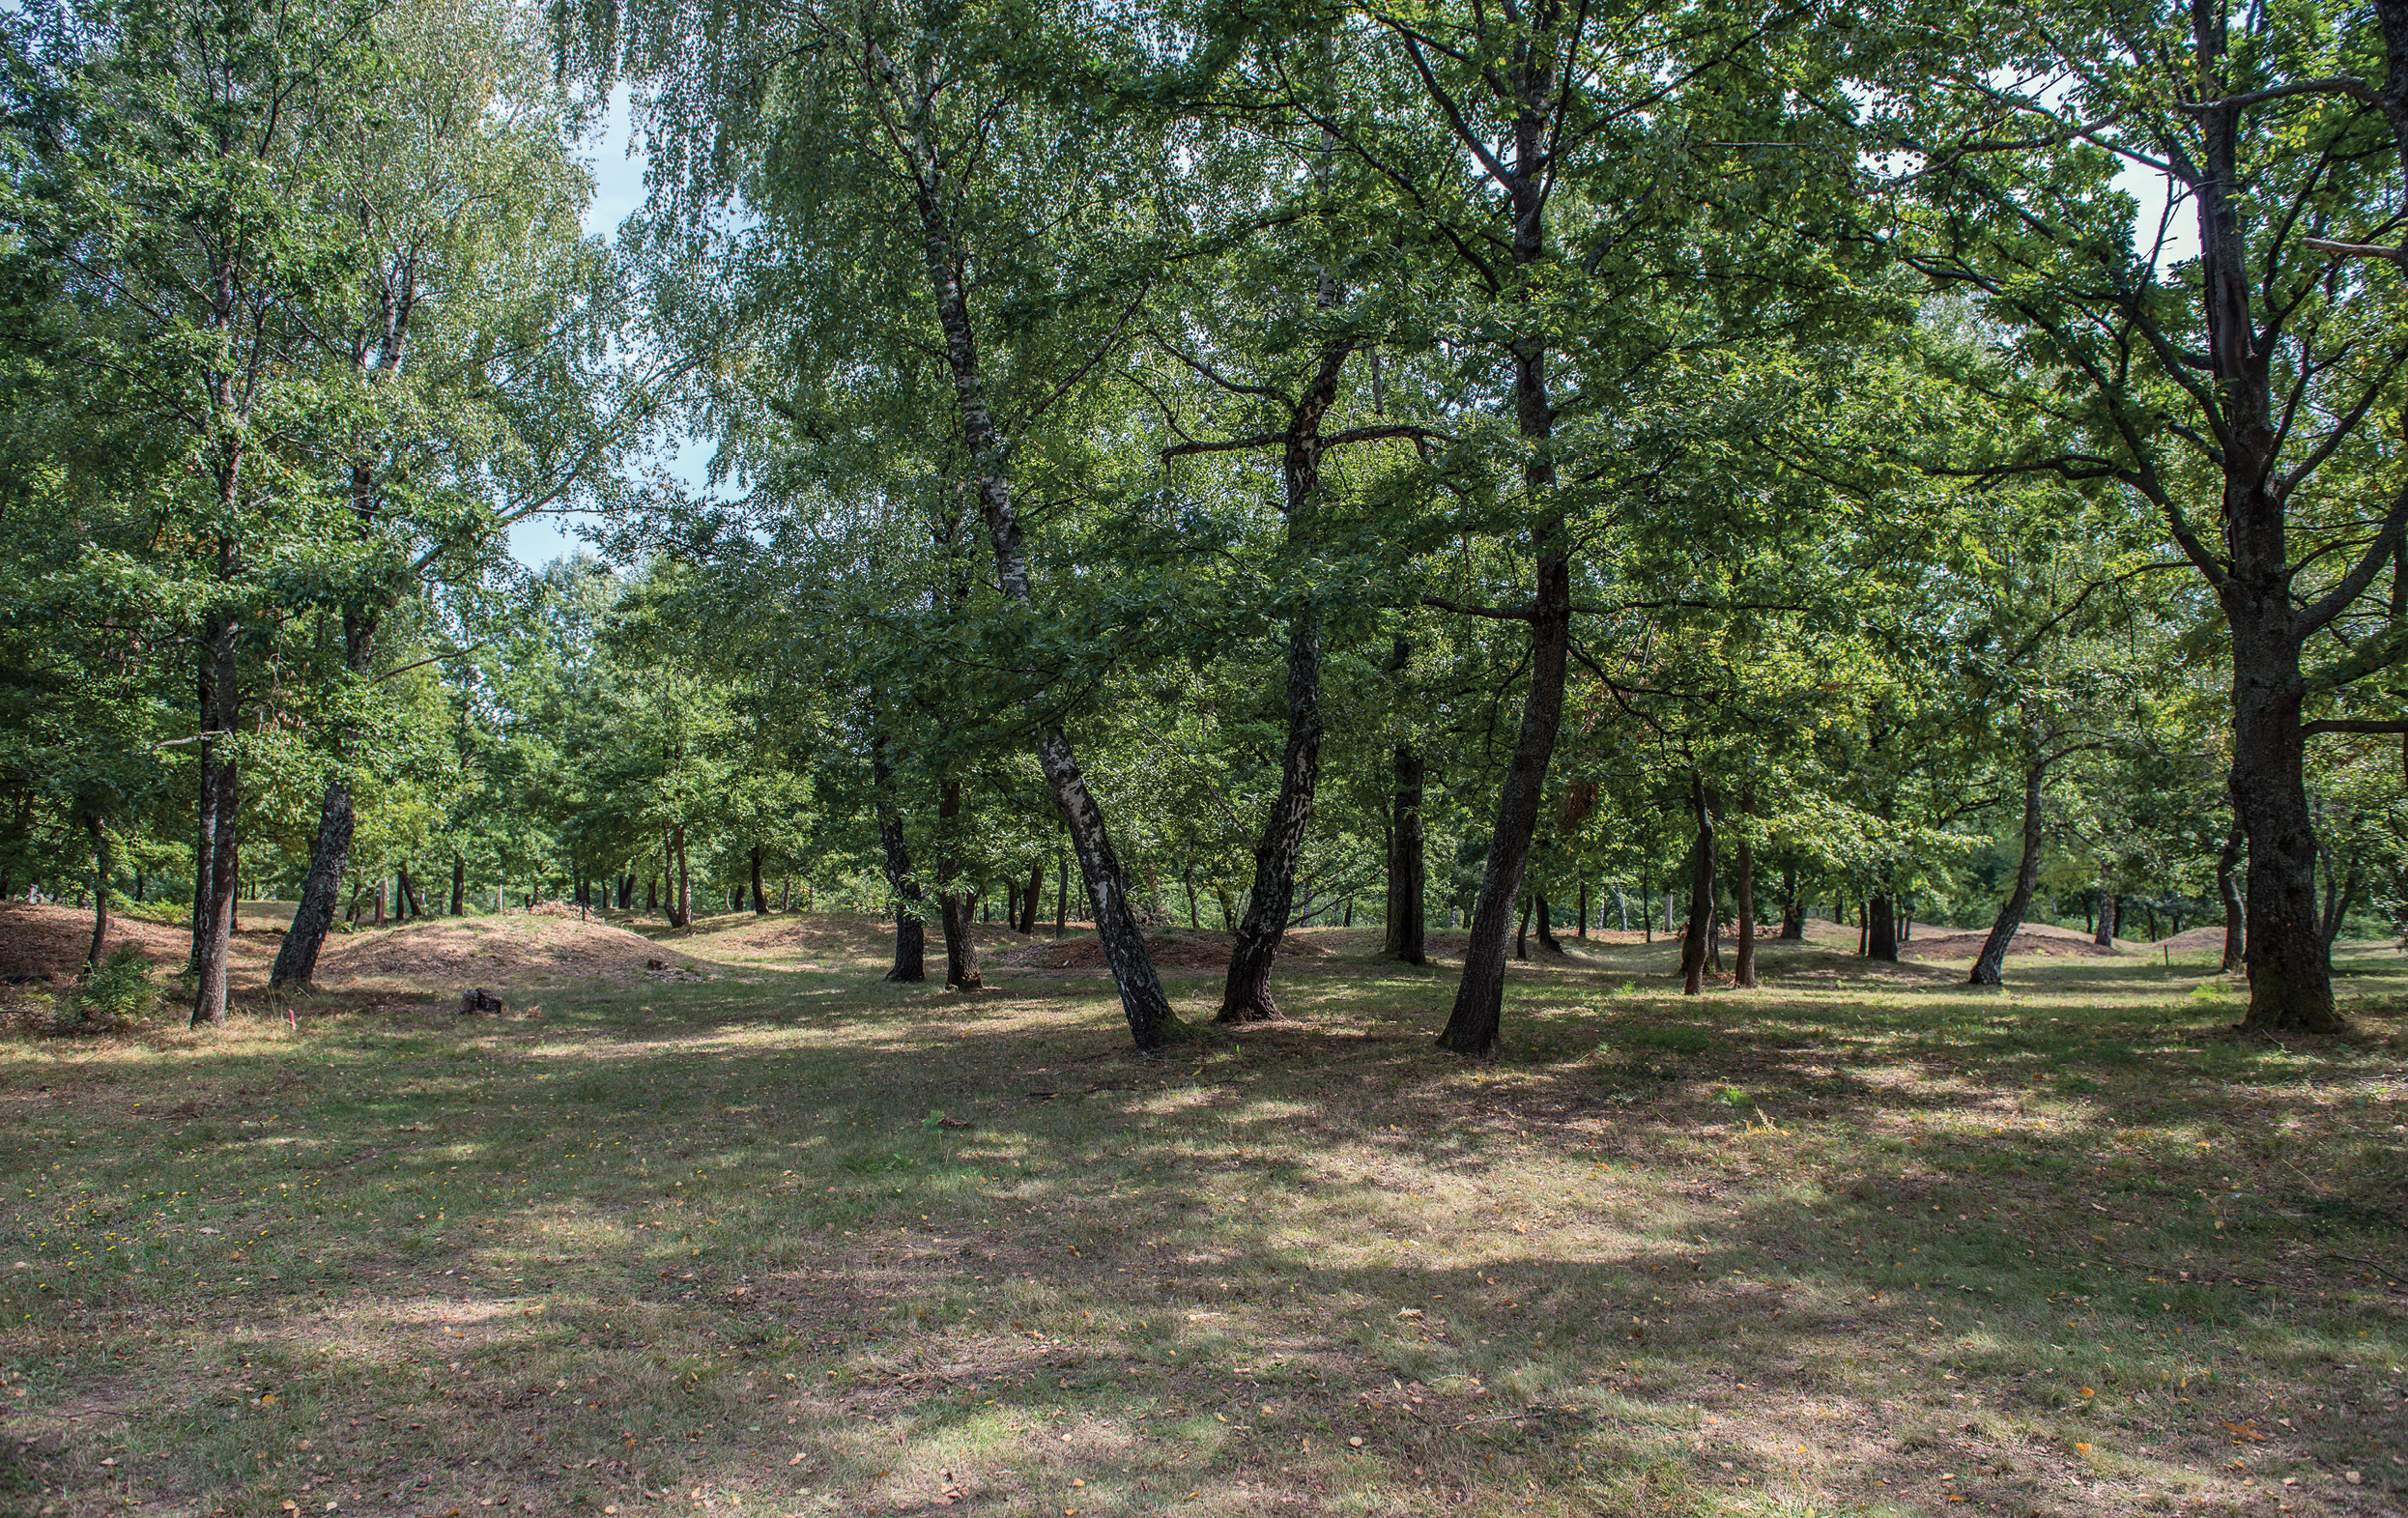 Zagreb and beyond: exploring Iron Age burial mounds on the Trail of Princes